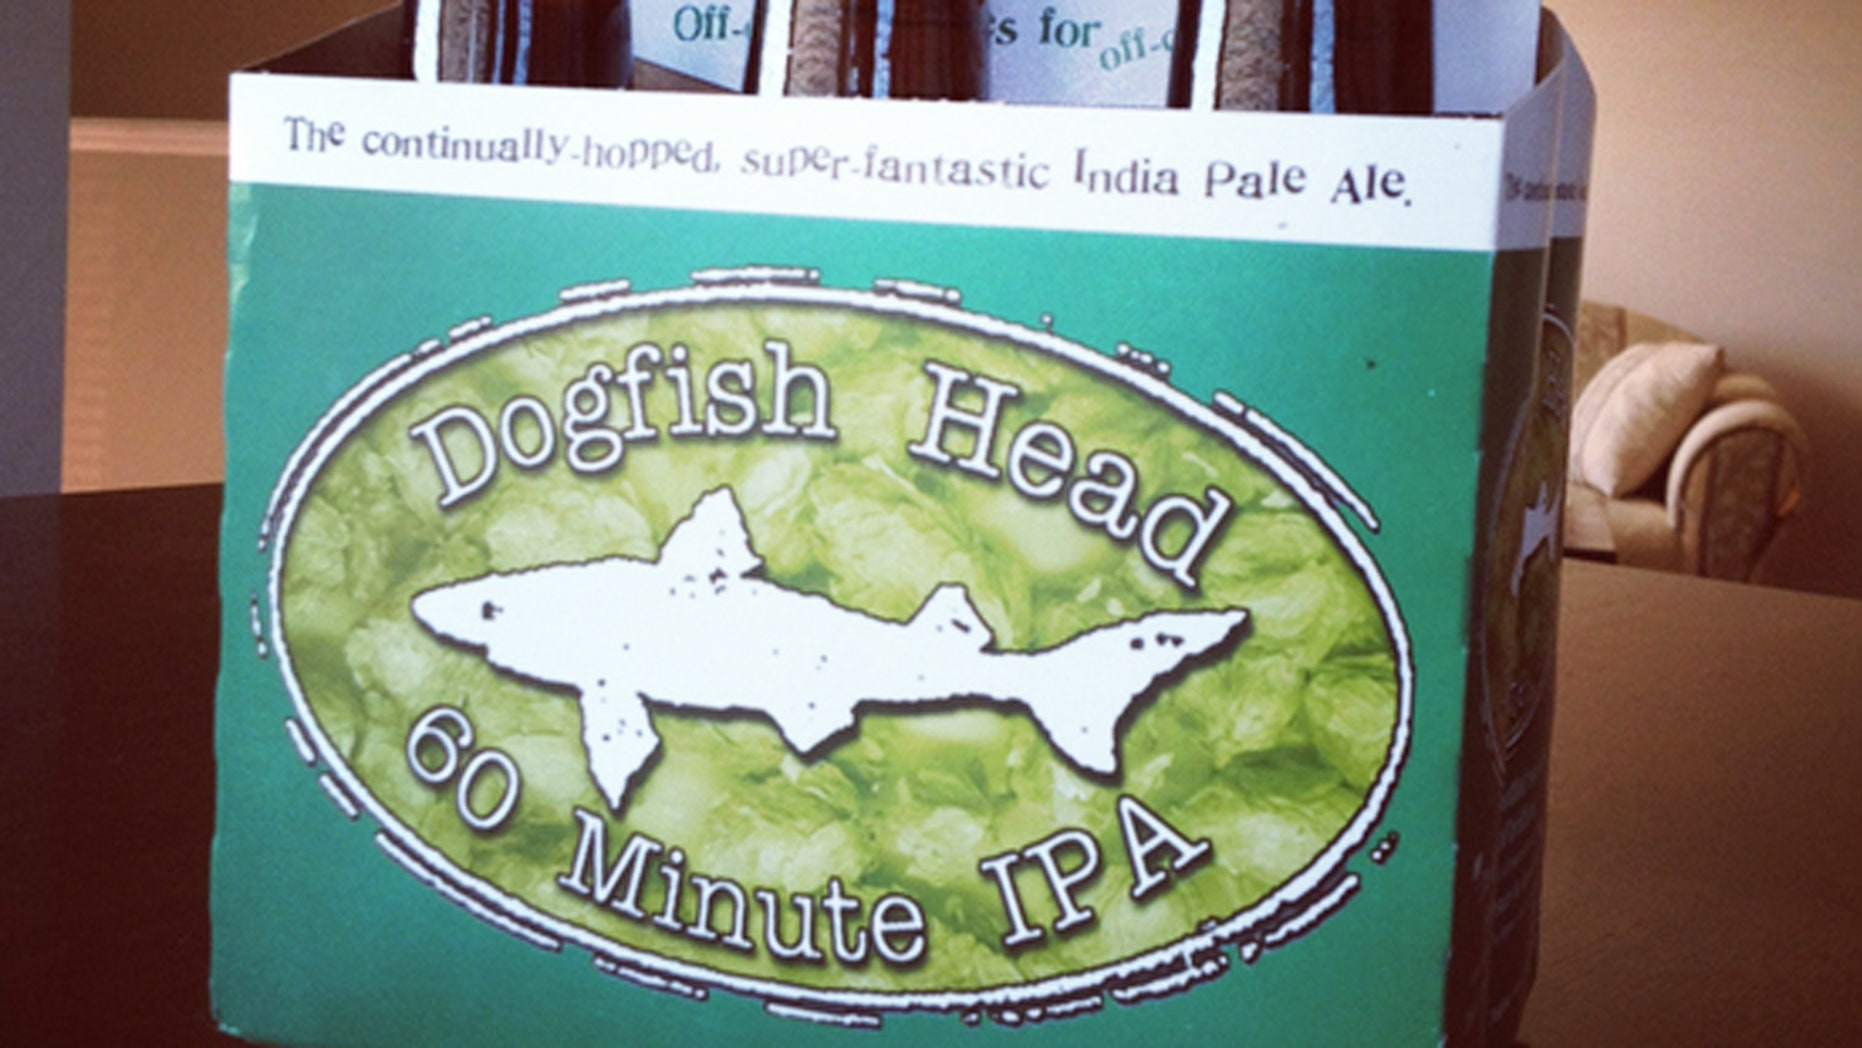 """Dartmouth, Nova Scotia, Canada - August 29, 2012: A six-pack of Dogfish Head 60 Minute IPA Beer sitting on a table inside a home.  All six bottles are visible and unopened with Dogfish Head logo displayed on box.  """"Continually hopped, super-fantastic India Pale Ale"""" is also displayed."""